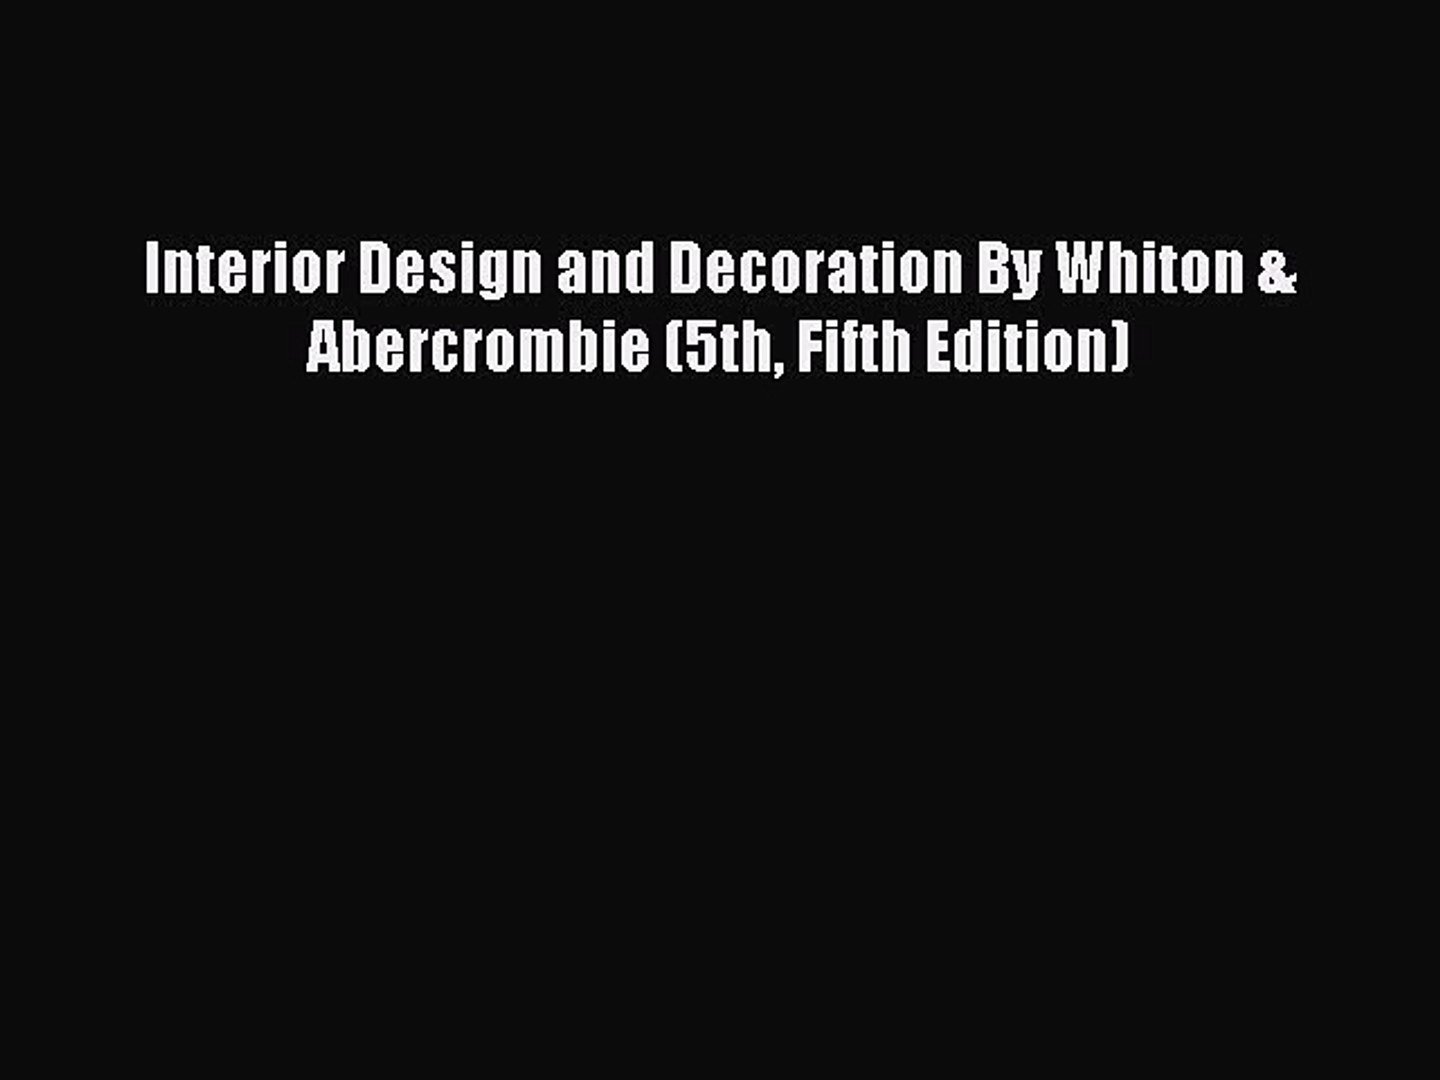 Download Interior Design And Decoration By Whiton Abercrombie 5th Fifth Edition Book Online Video Dailymotion